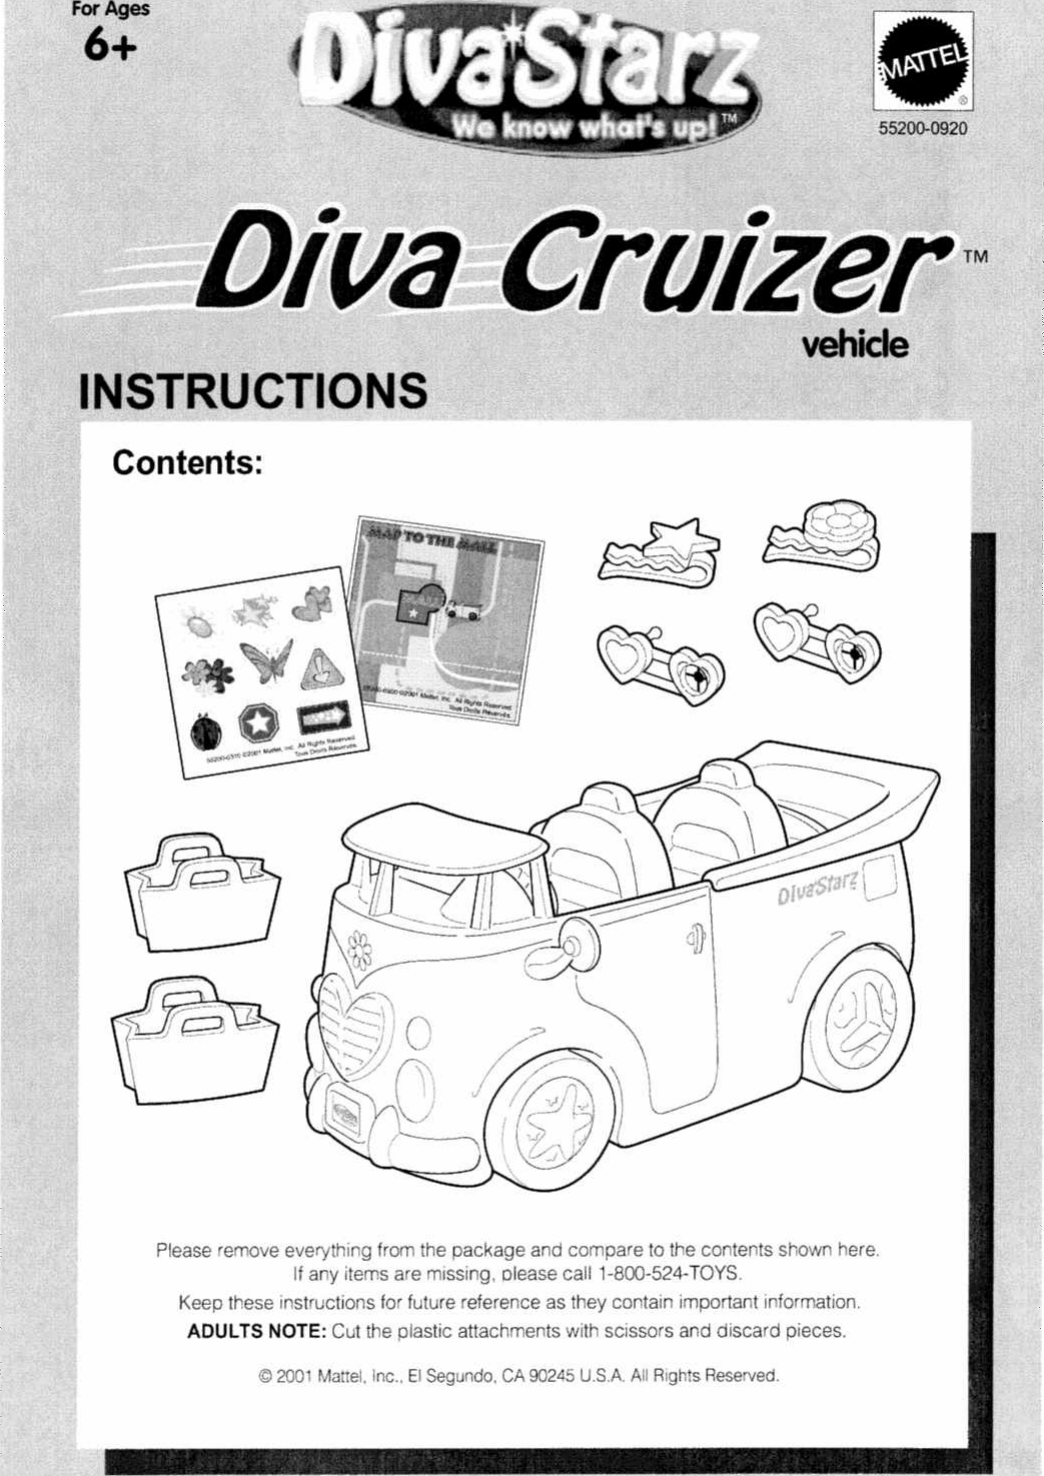 Page 1 of 3 - Mattel Mattel-Diva-Starz-55200-0920-Users-Manual-  Mattel-diva-starz-55200-0920-users-manual